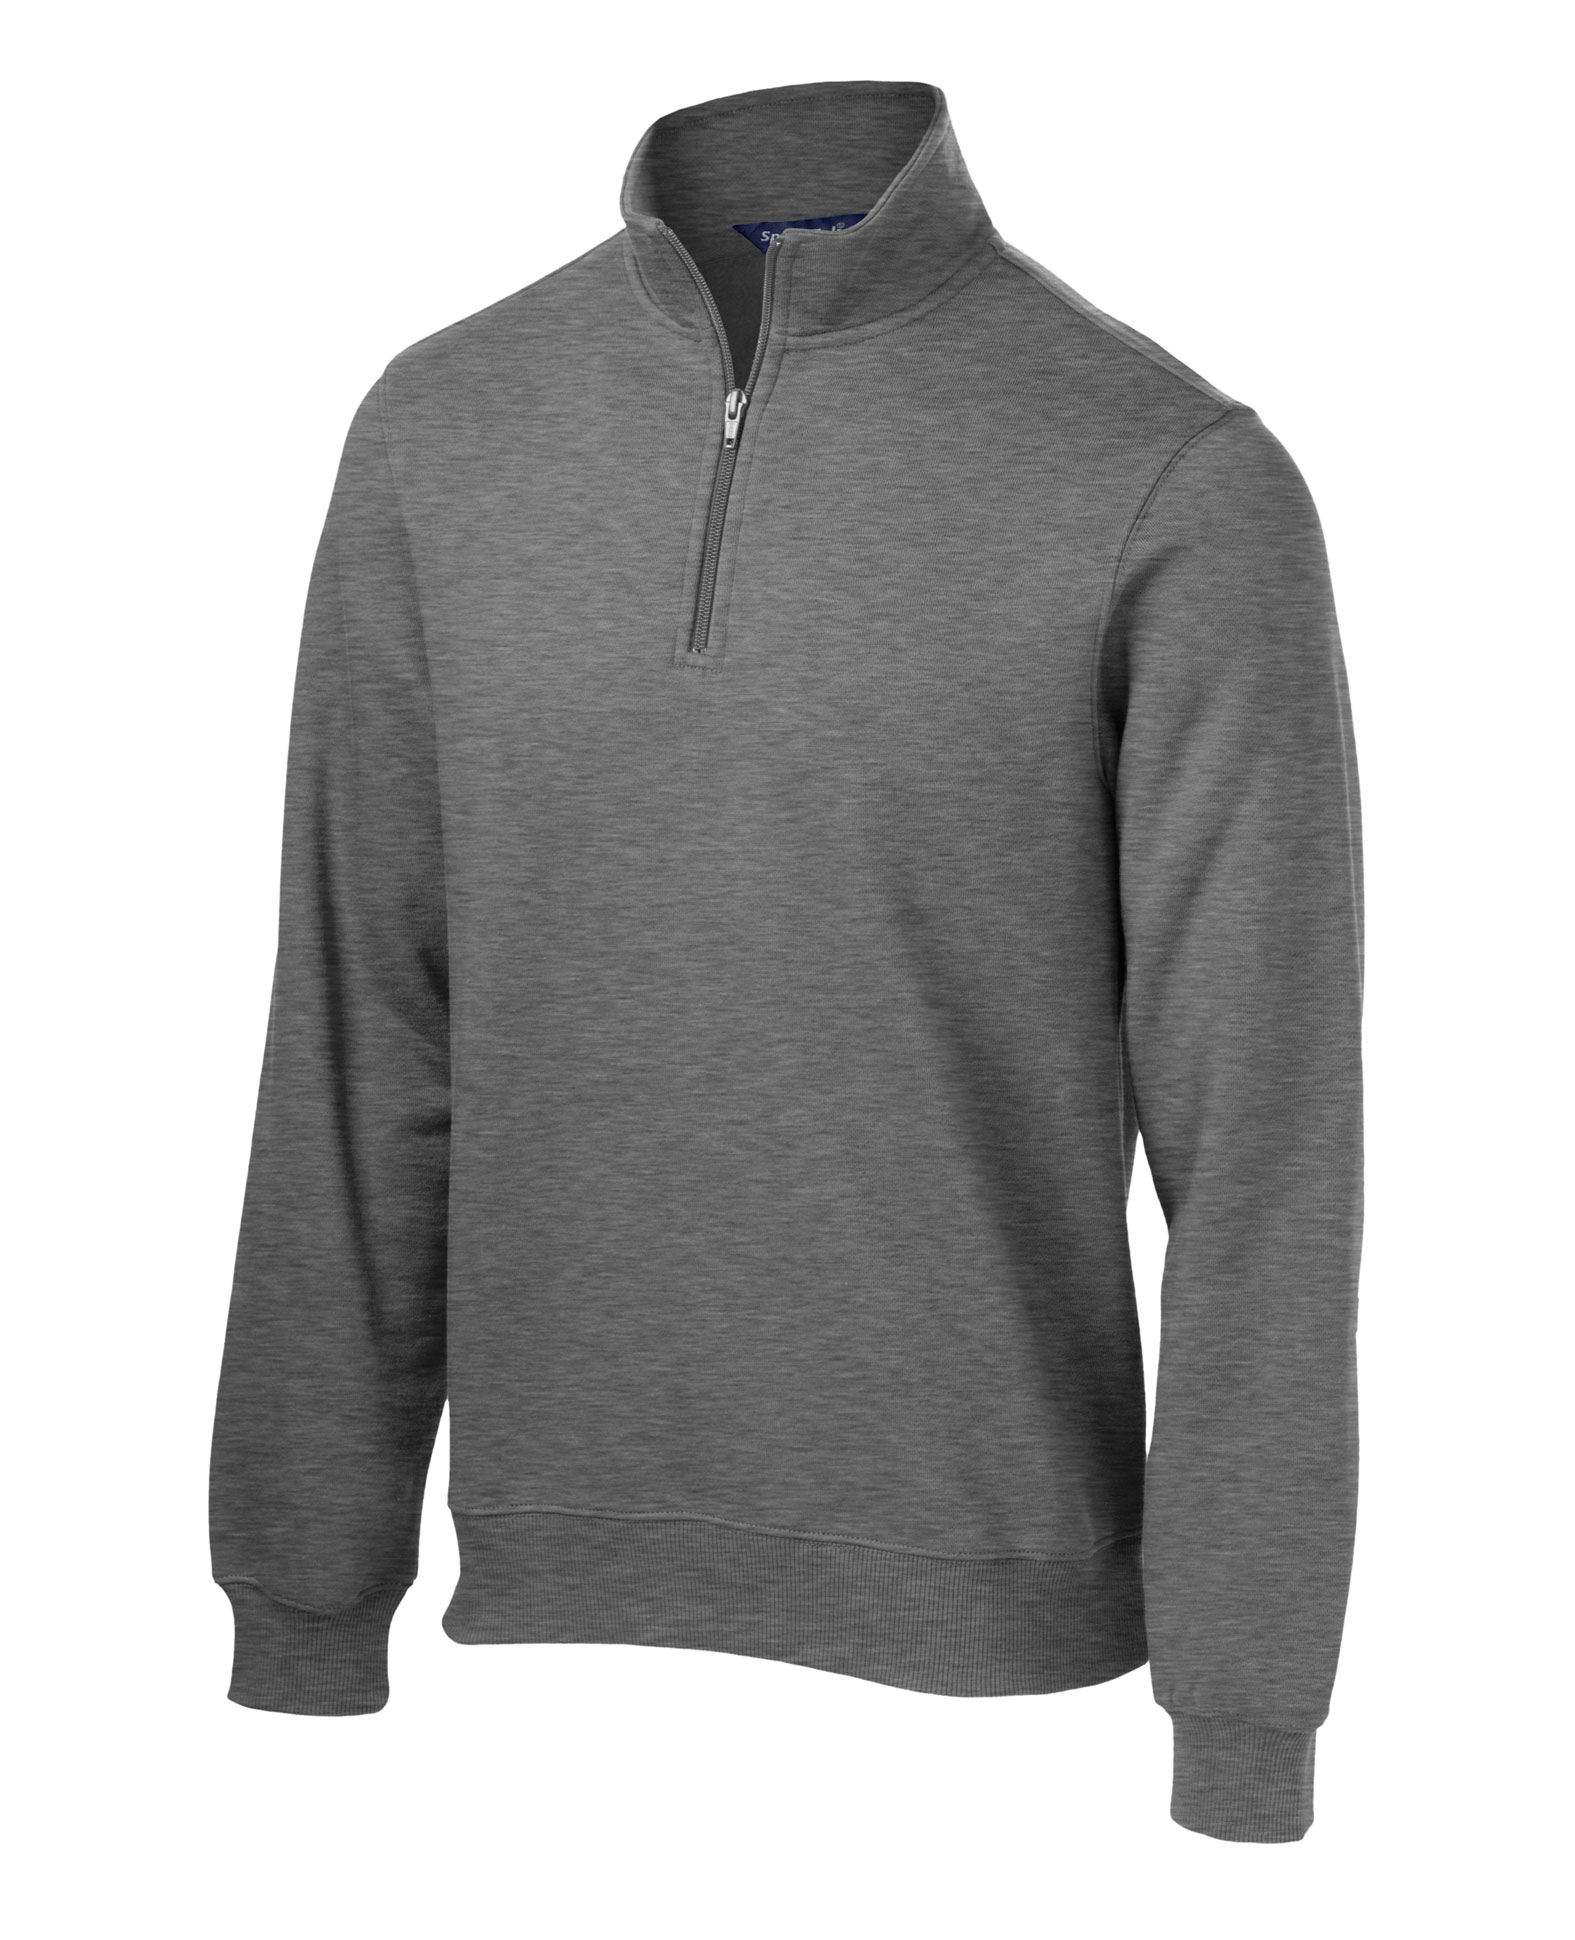 980060a061d Design Mens Sport-Tek® 1 4 Zip Sweatshirt